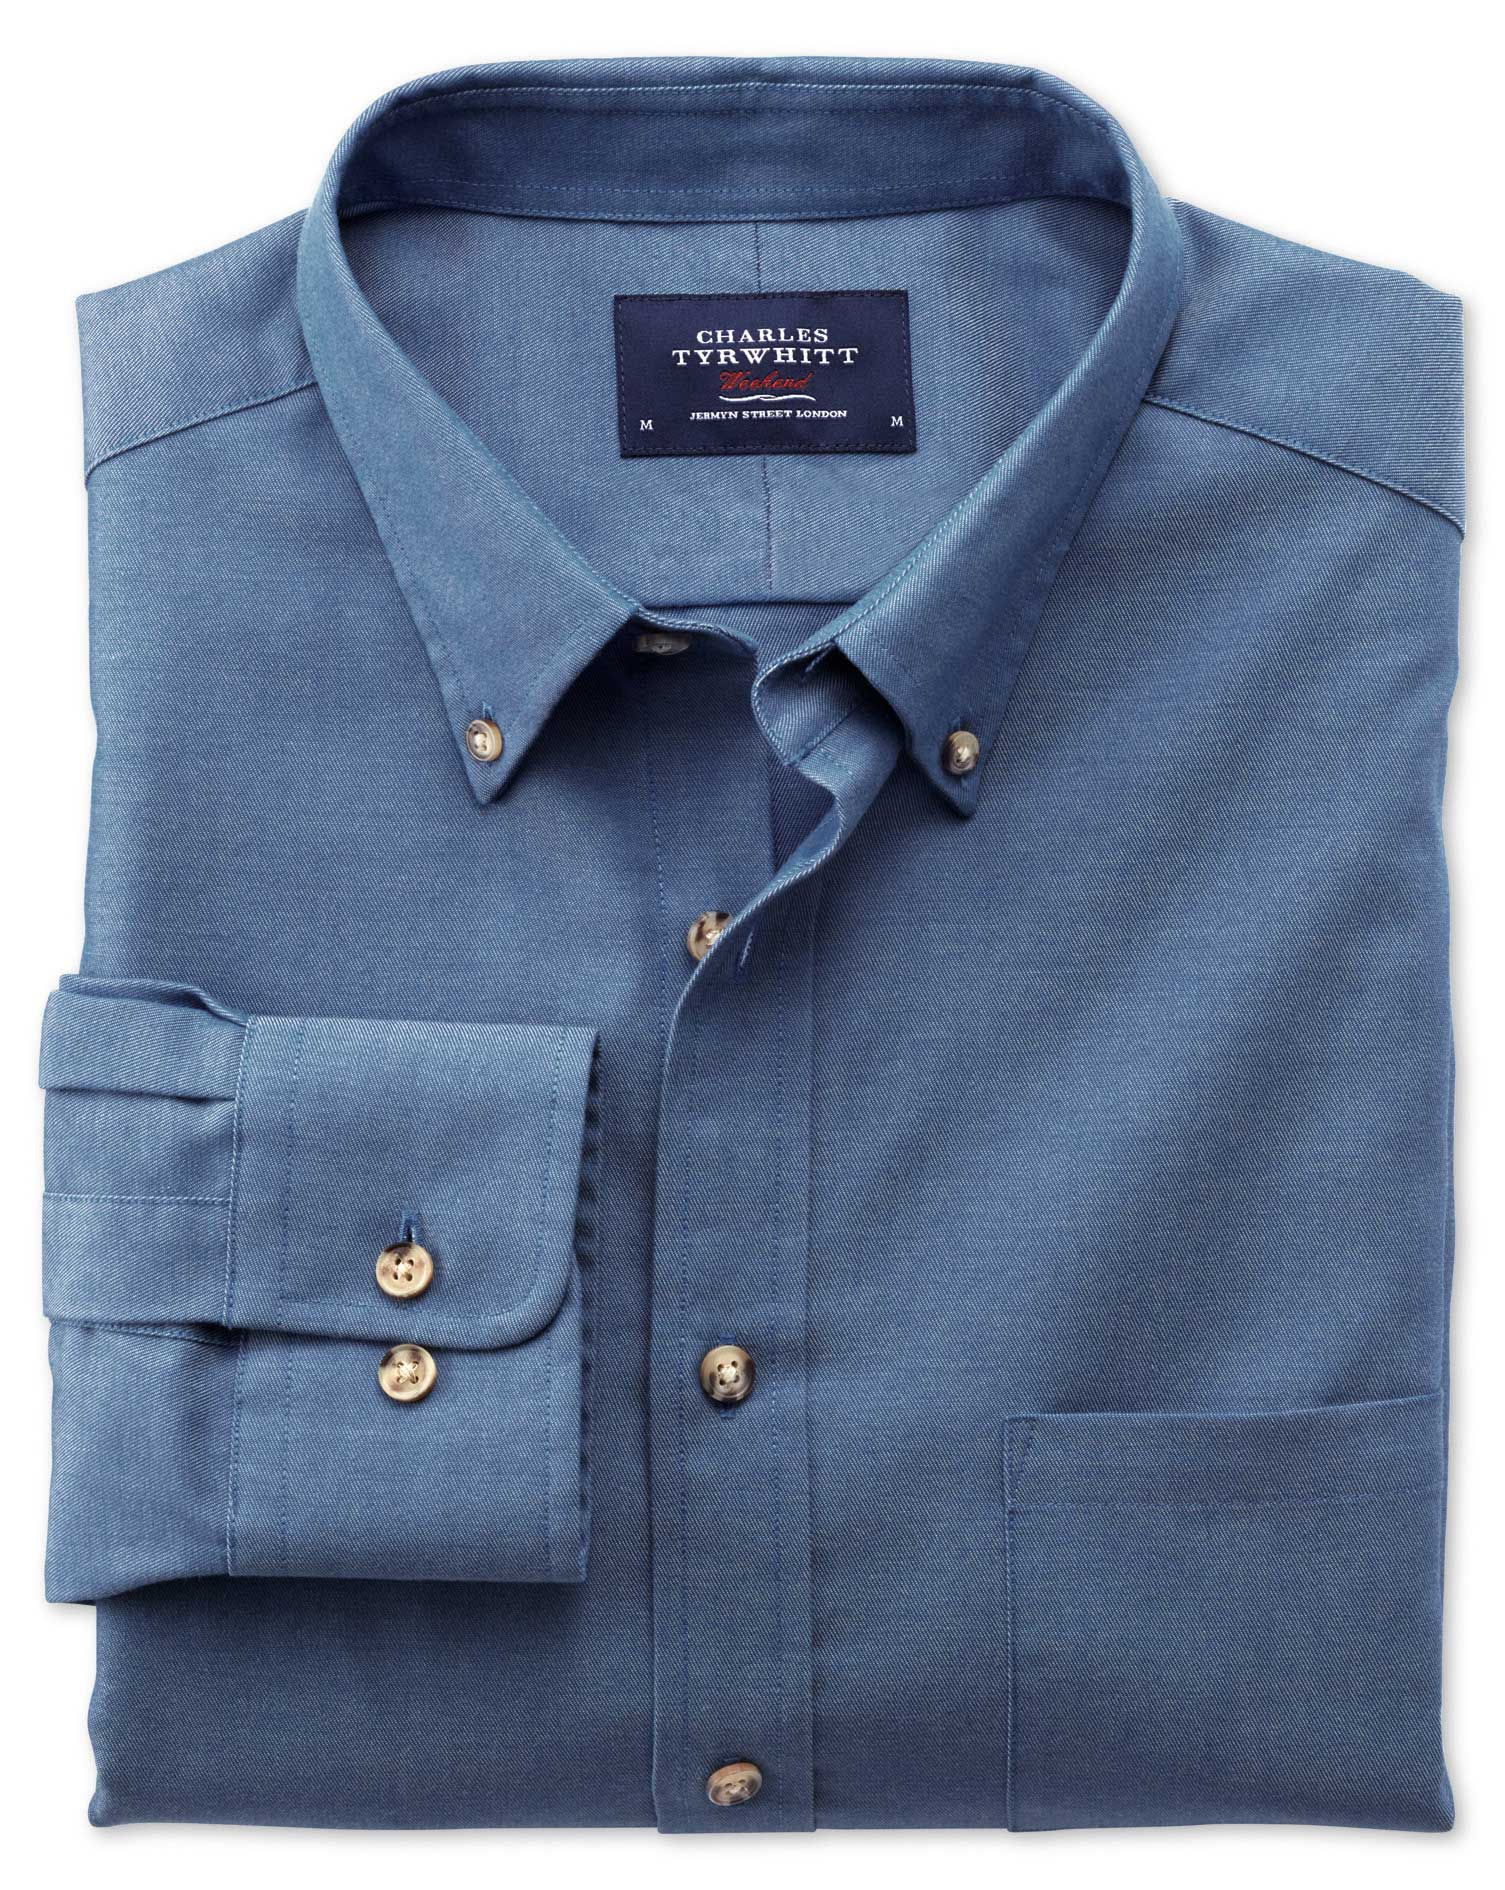 Extra Slim Fit Non-Iron Twill Blue Cotton Shirt Single Cuff Size XL by Charles Tyrwhitt